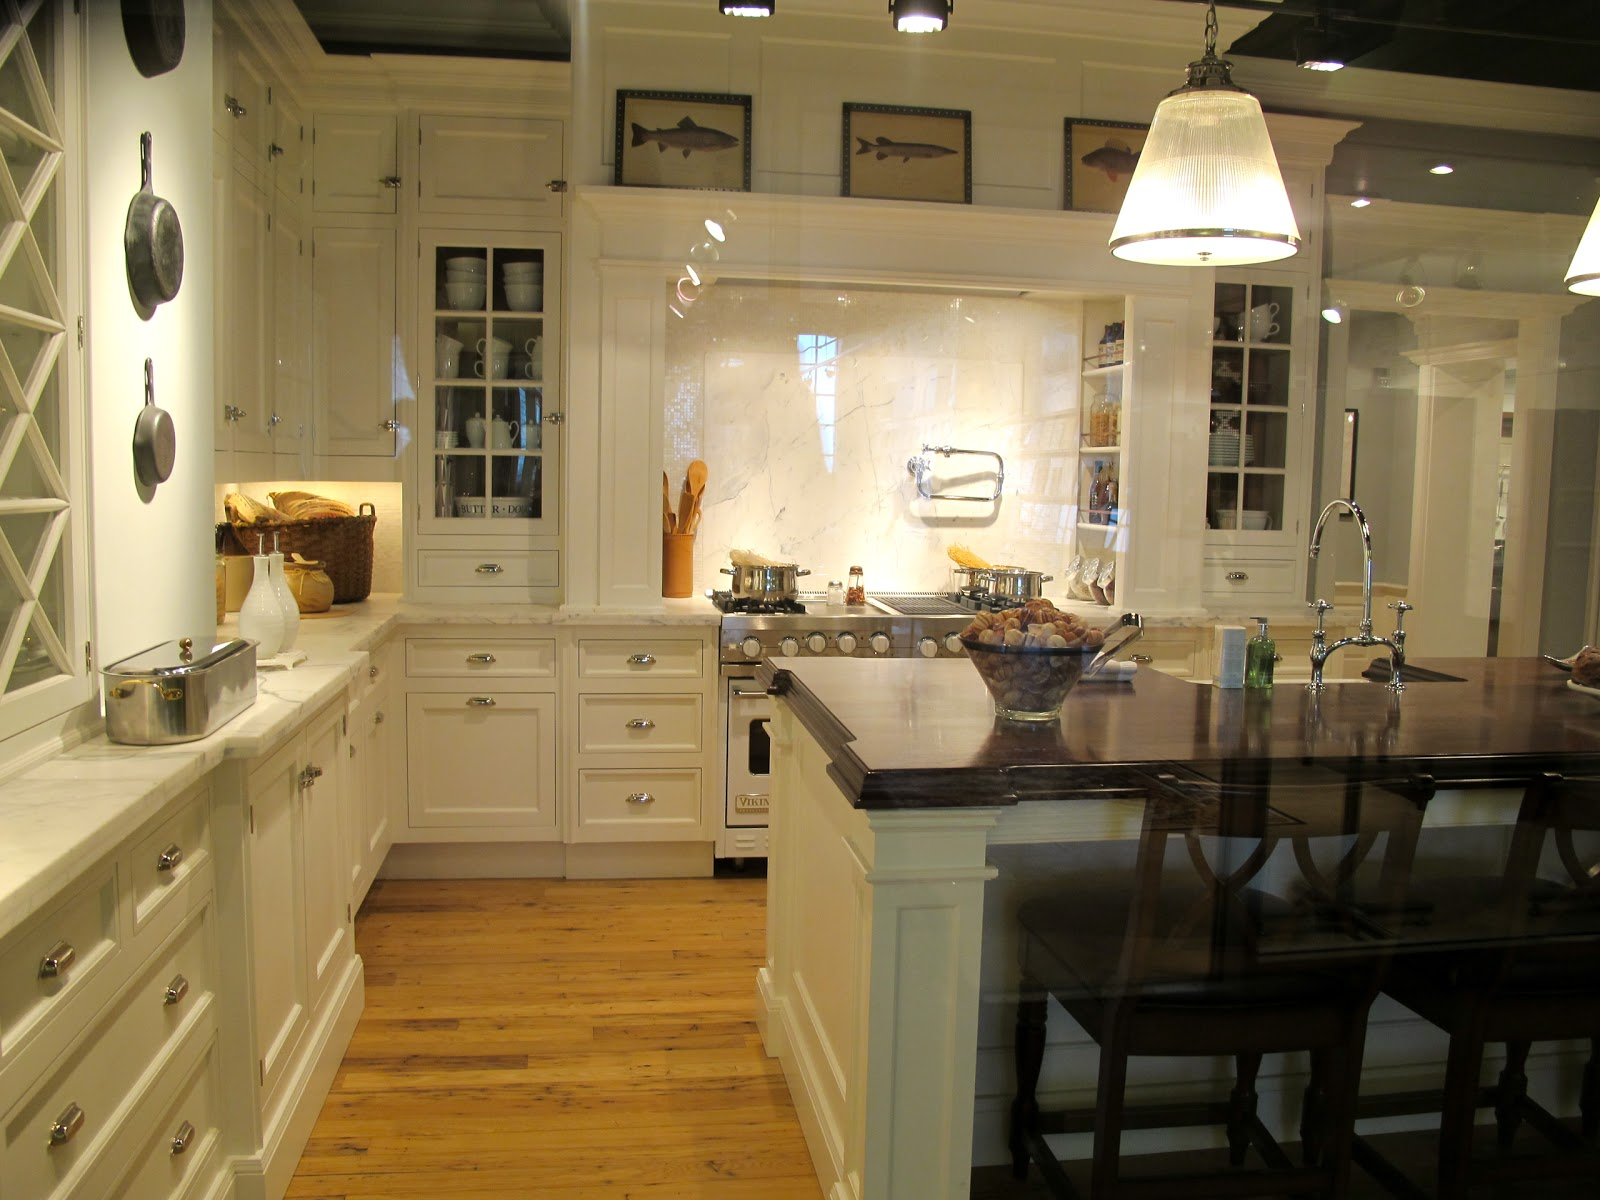 Jenny steffens hobick kitchens the most amazing for Kitchen remodel inspiration